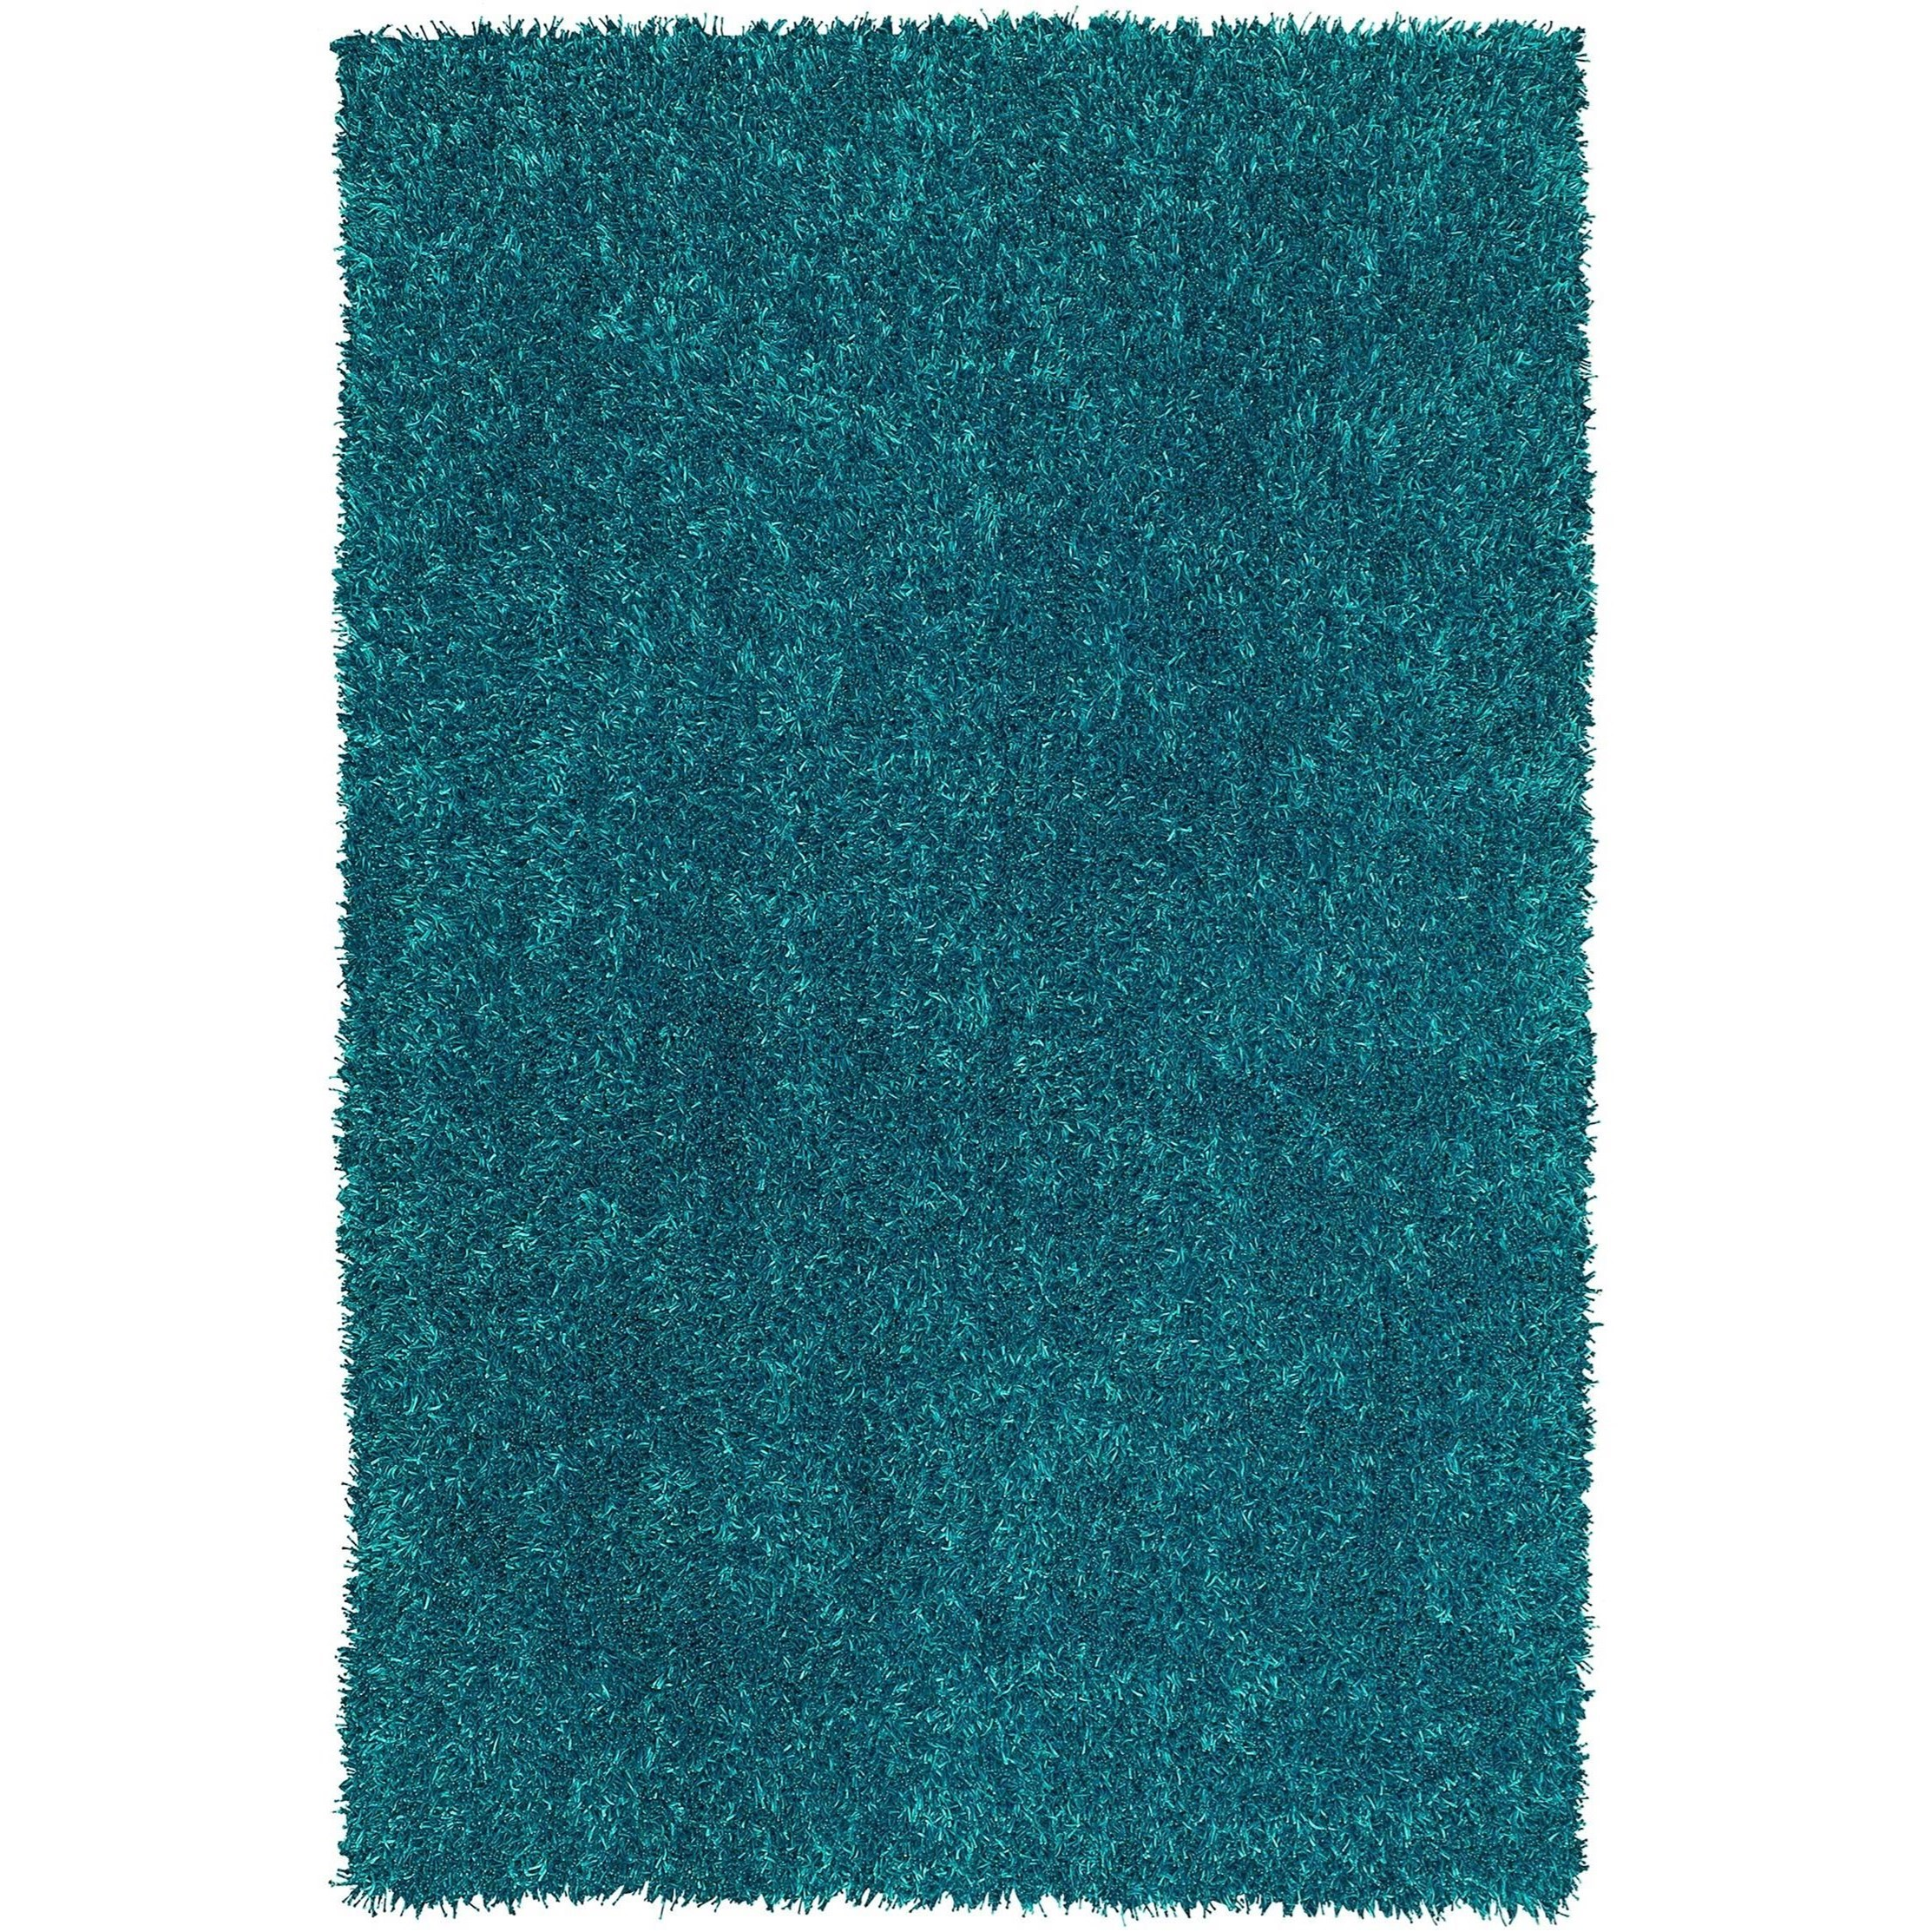 Dalyn Bright Lights Teal 8'X10' Rug - Item Number: BG69TE8X10